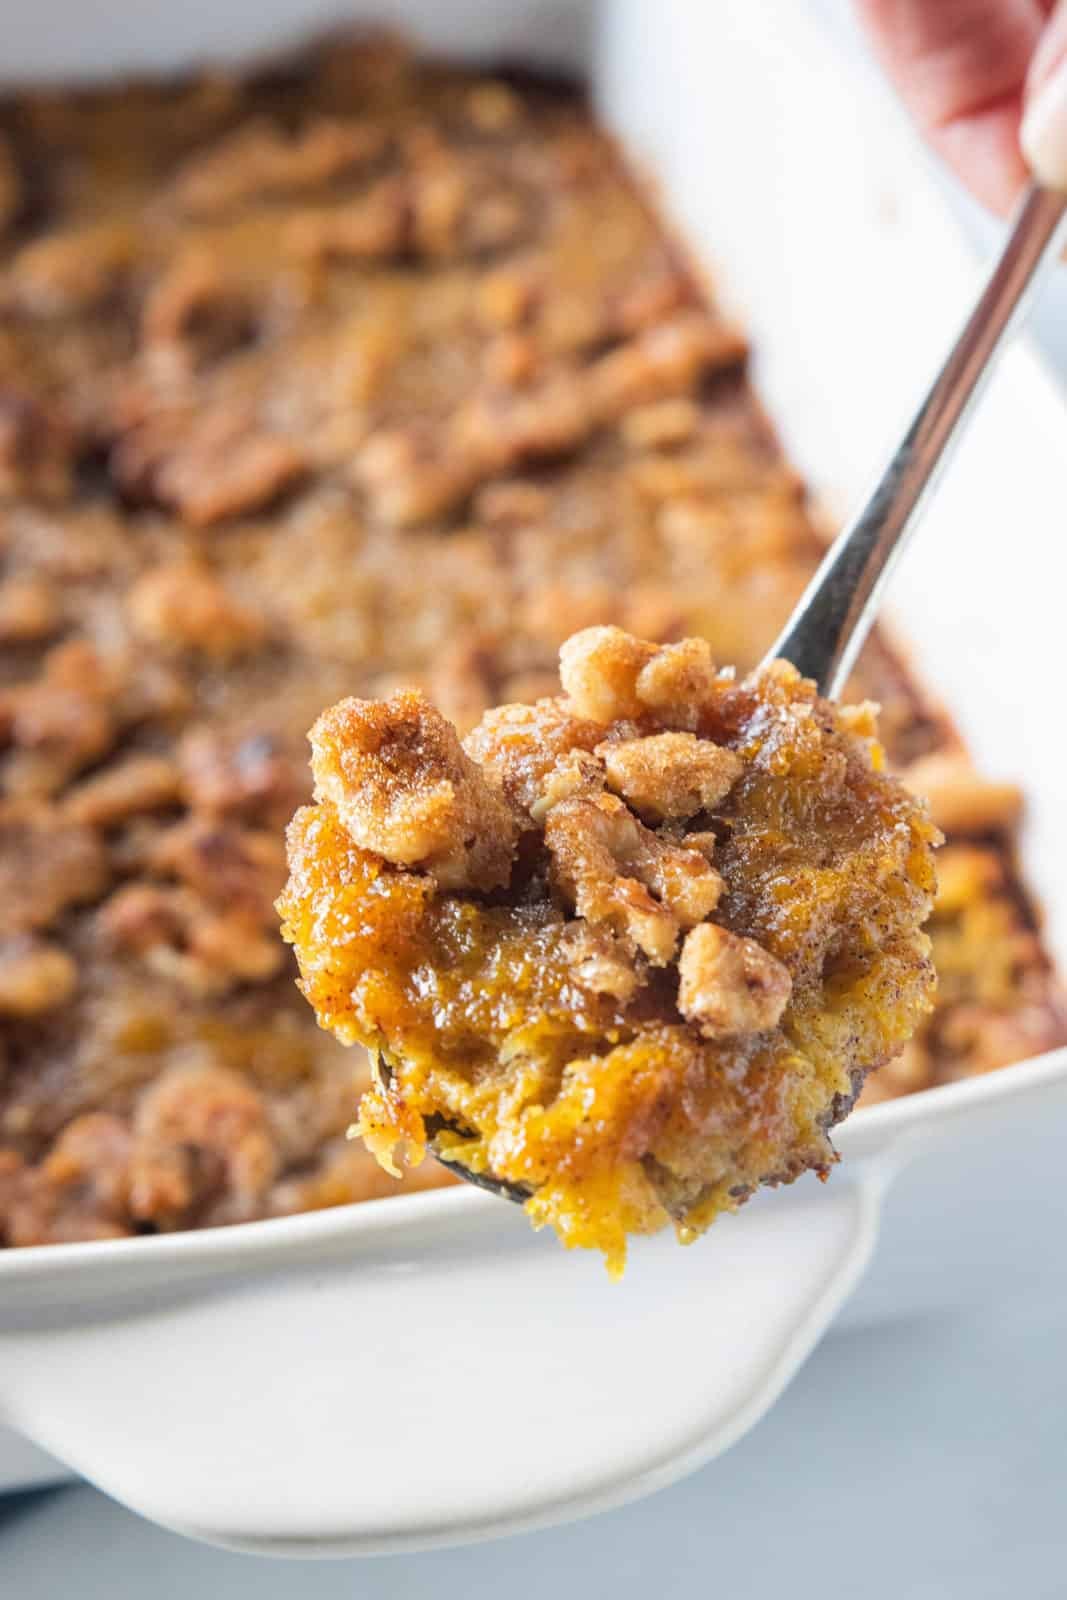 Butternut squash casserole in a white baking dish with a spoon scooping a serving from the dish.